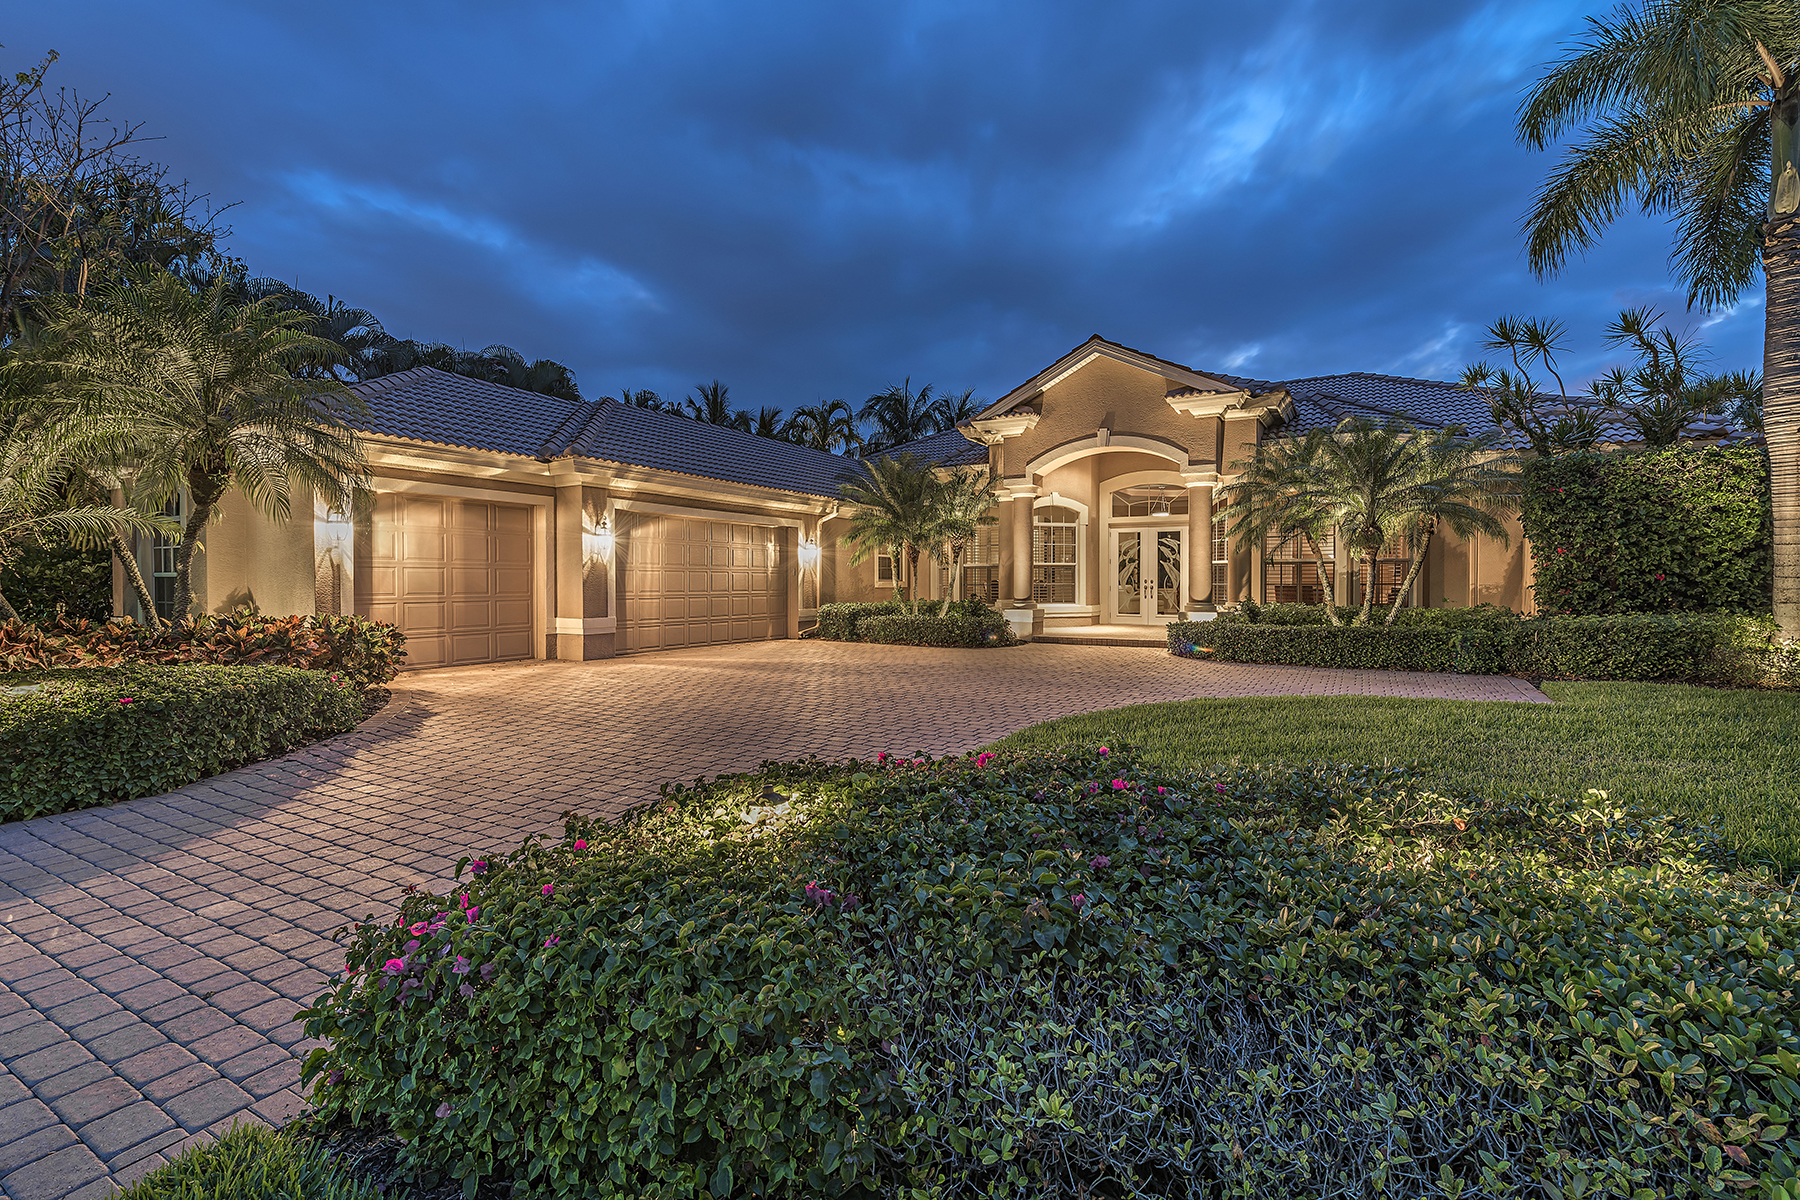 Casa Unifamiliar por un Venta en PELICAN MARSH - MUIRFIELD AT THE MARSH 8755 Muirfield Dr Naples, Florida, 34109 Estados Unidos